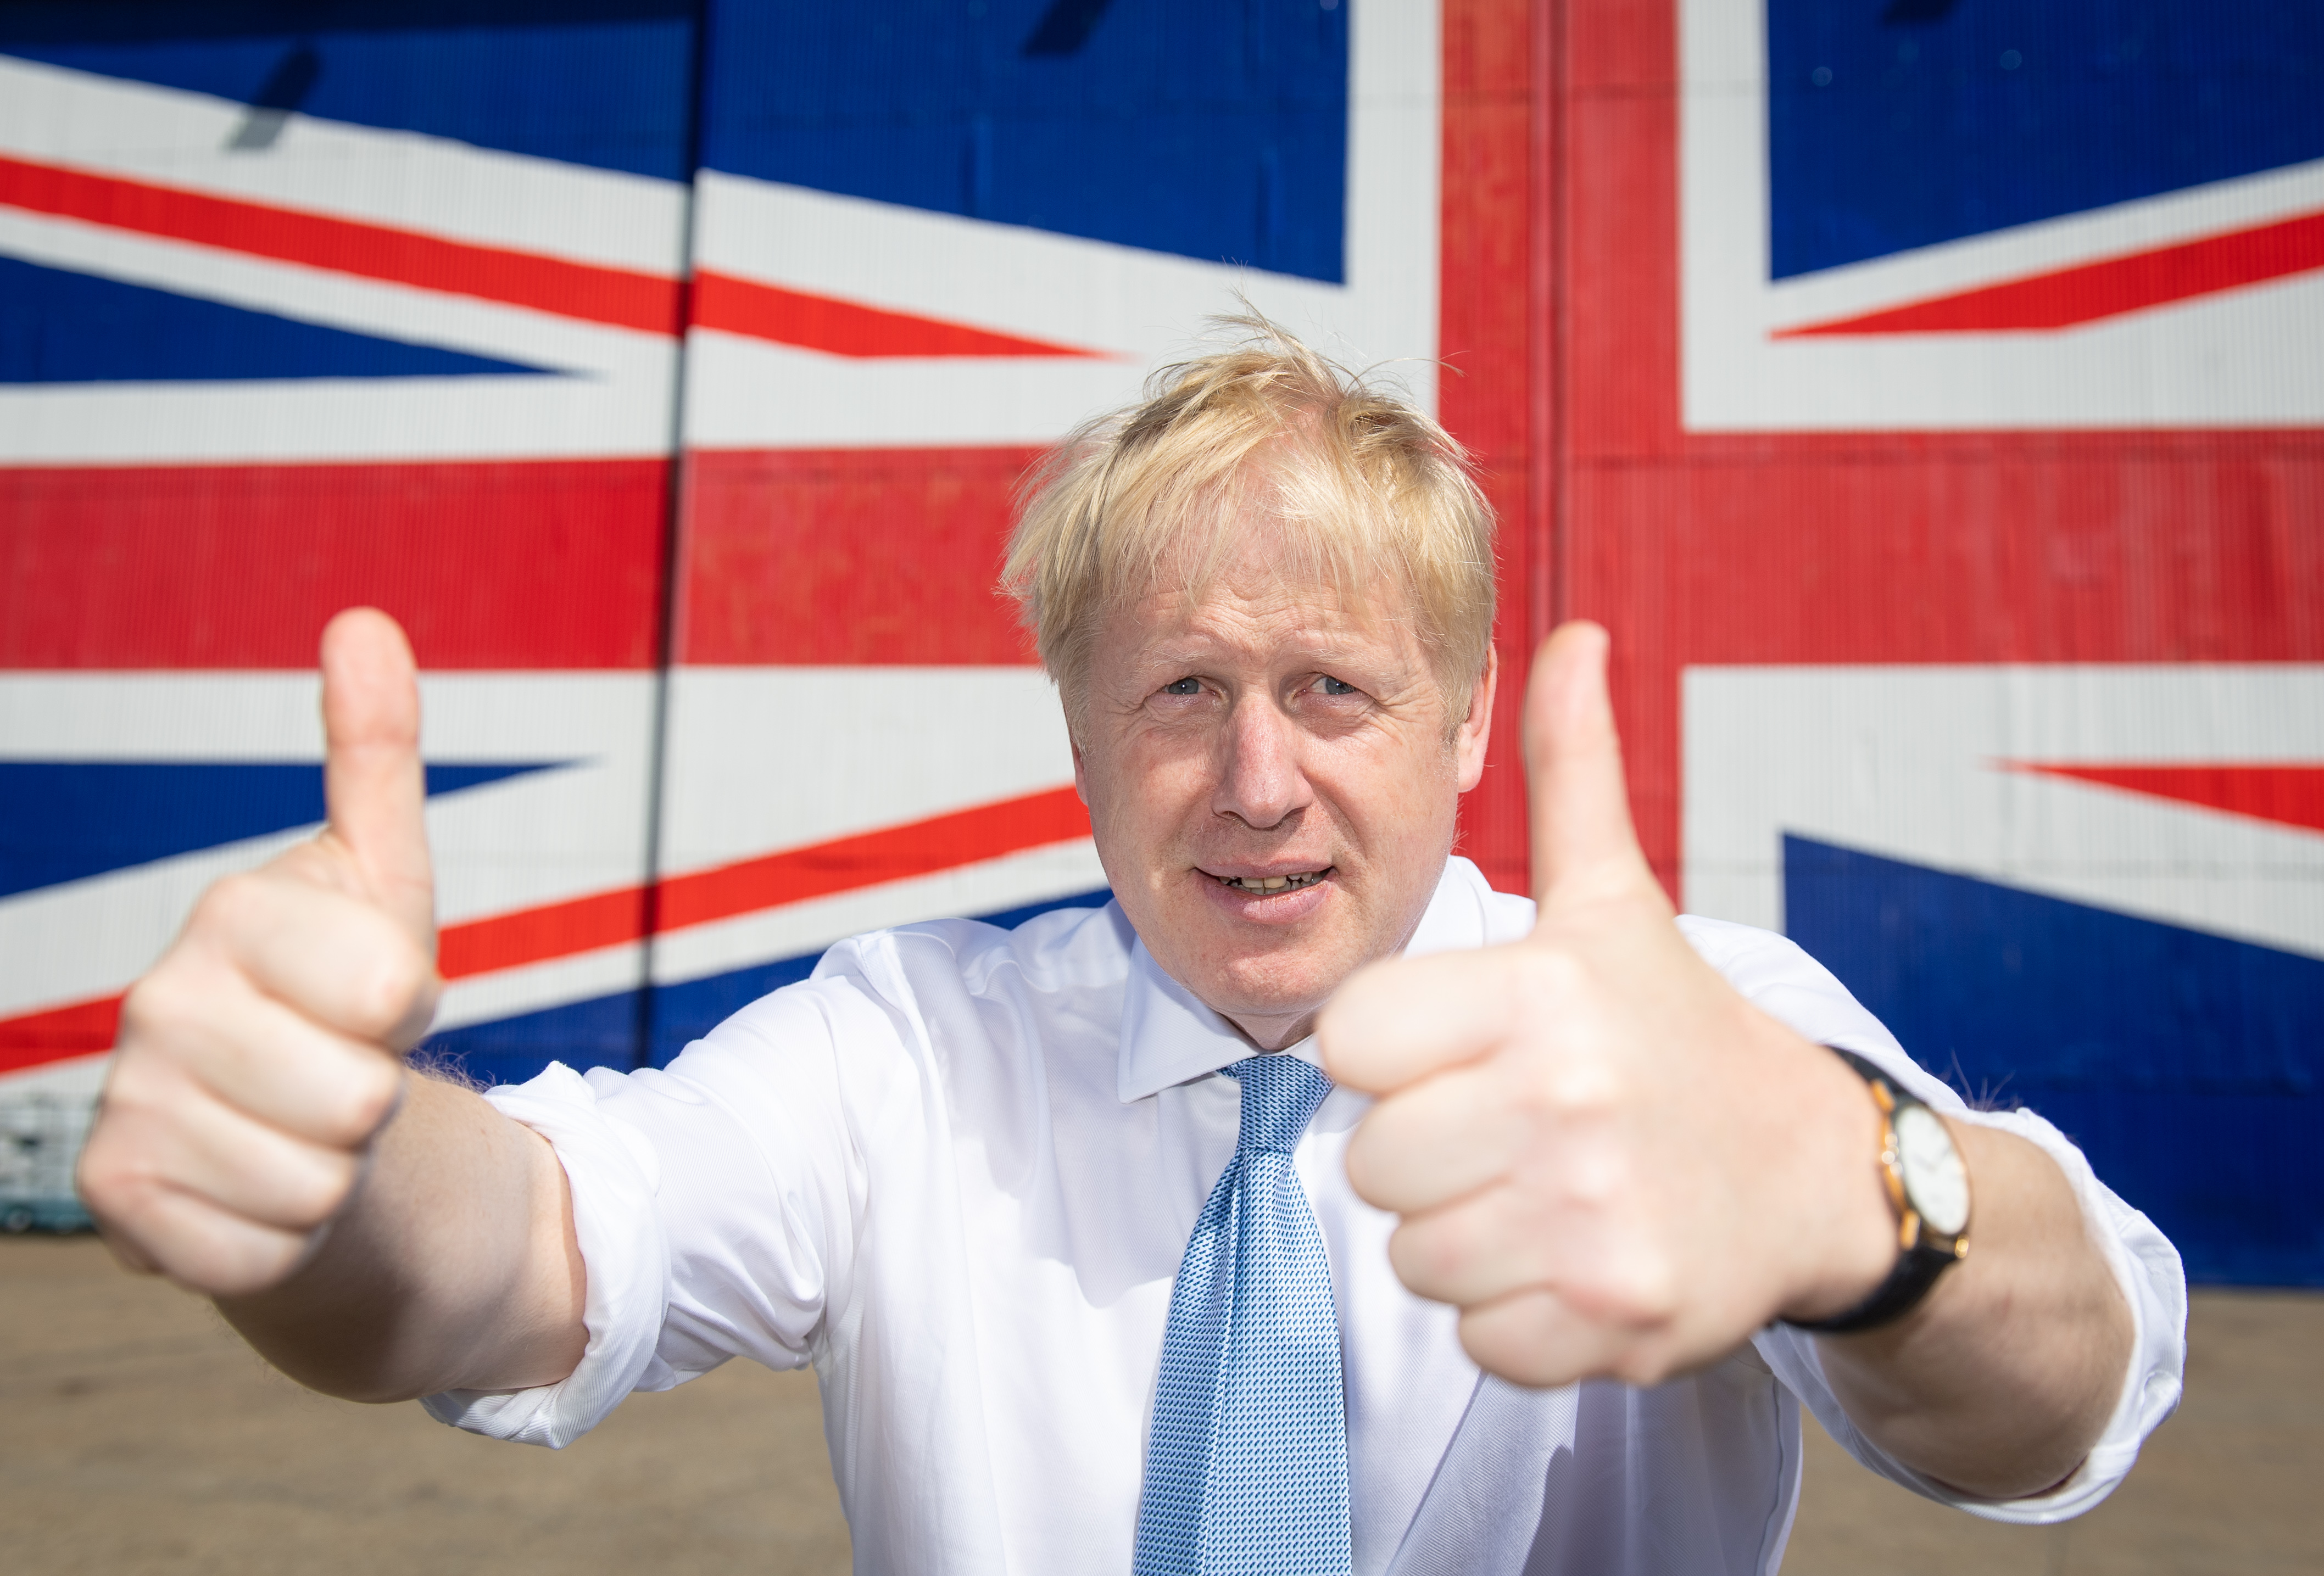 Conservative party leadership contender Boris Johnson poses for a photo at the Wight Shipyard Company at Venture Quay during a visit to the Isle of Wight.